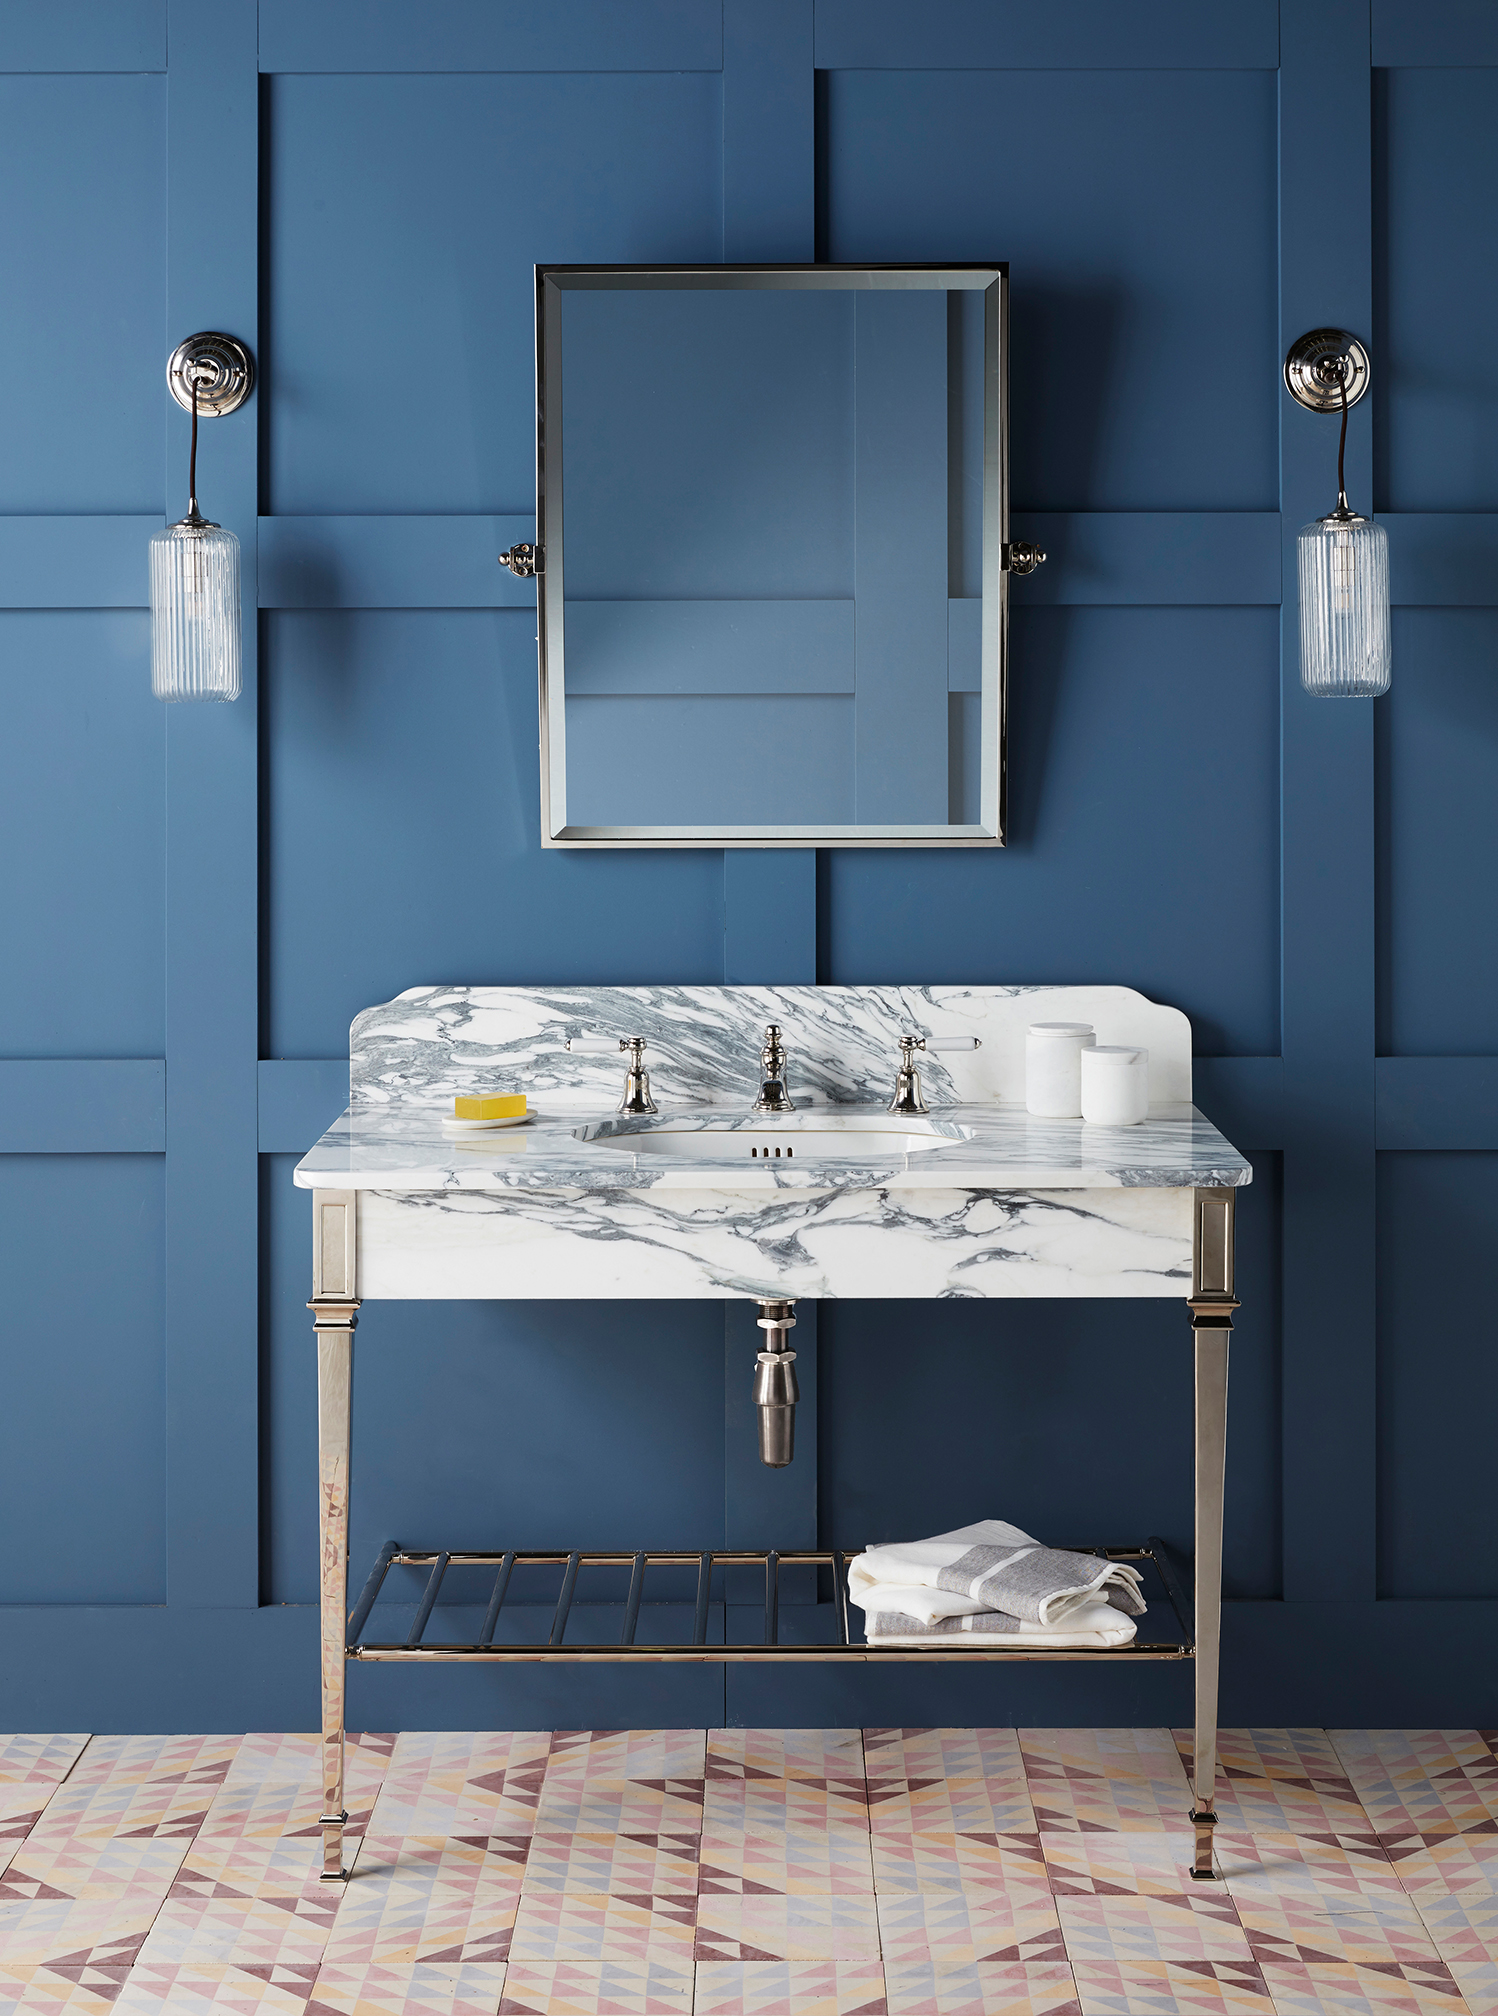 Called Thames, the collection is an adaptation of the original Hebdern design, with a shelf added for storing towels or baskets of toiletries.